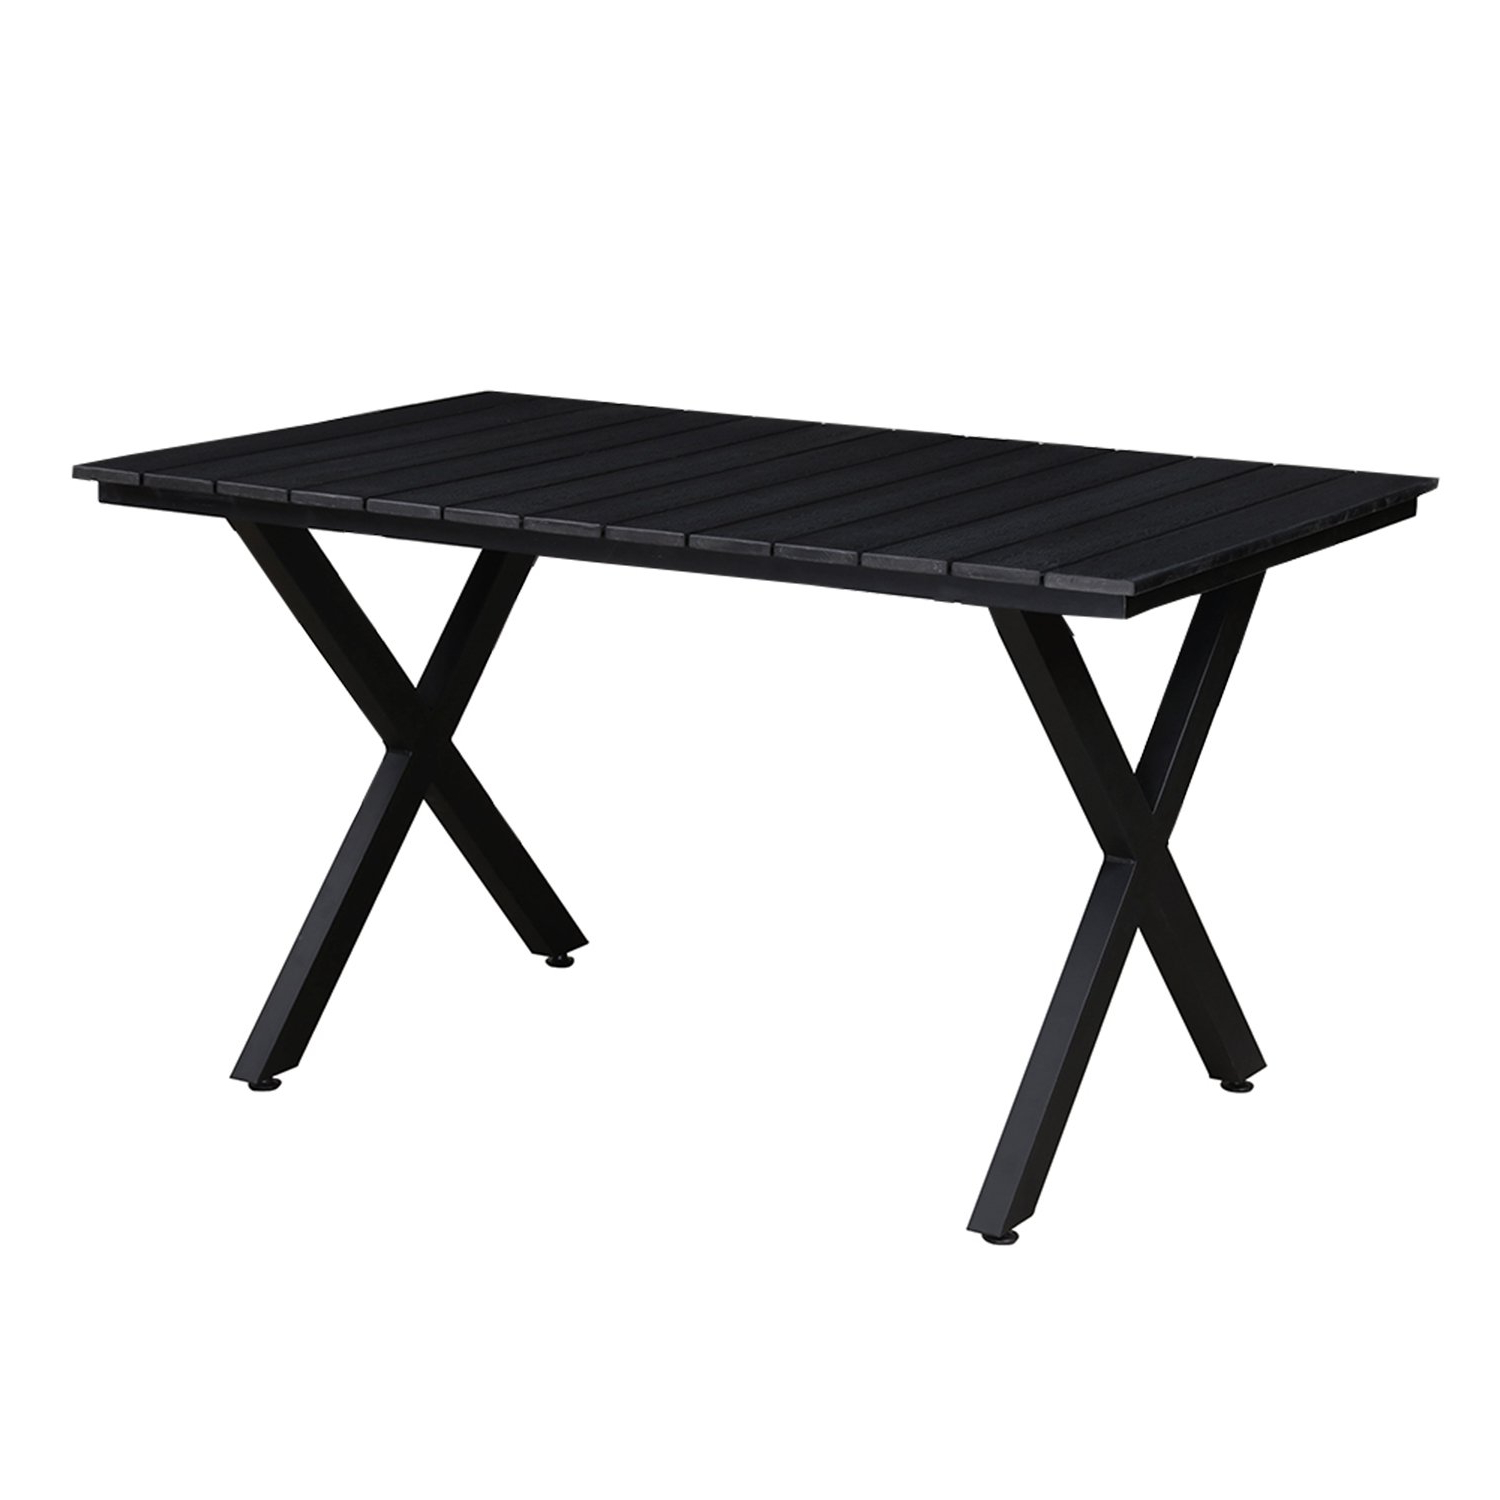 Newest Contemporary Rectangular Dining Tables For Amazon : Oakland Living Az902 Table Bk Modern Outdoor (Gallery 20 of 30)